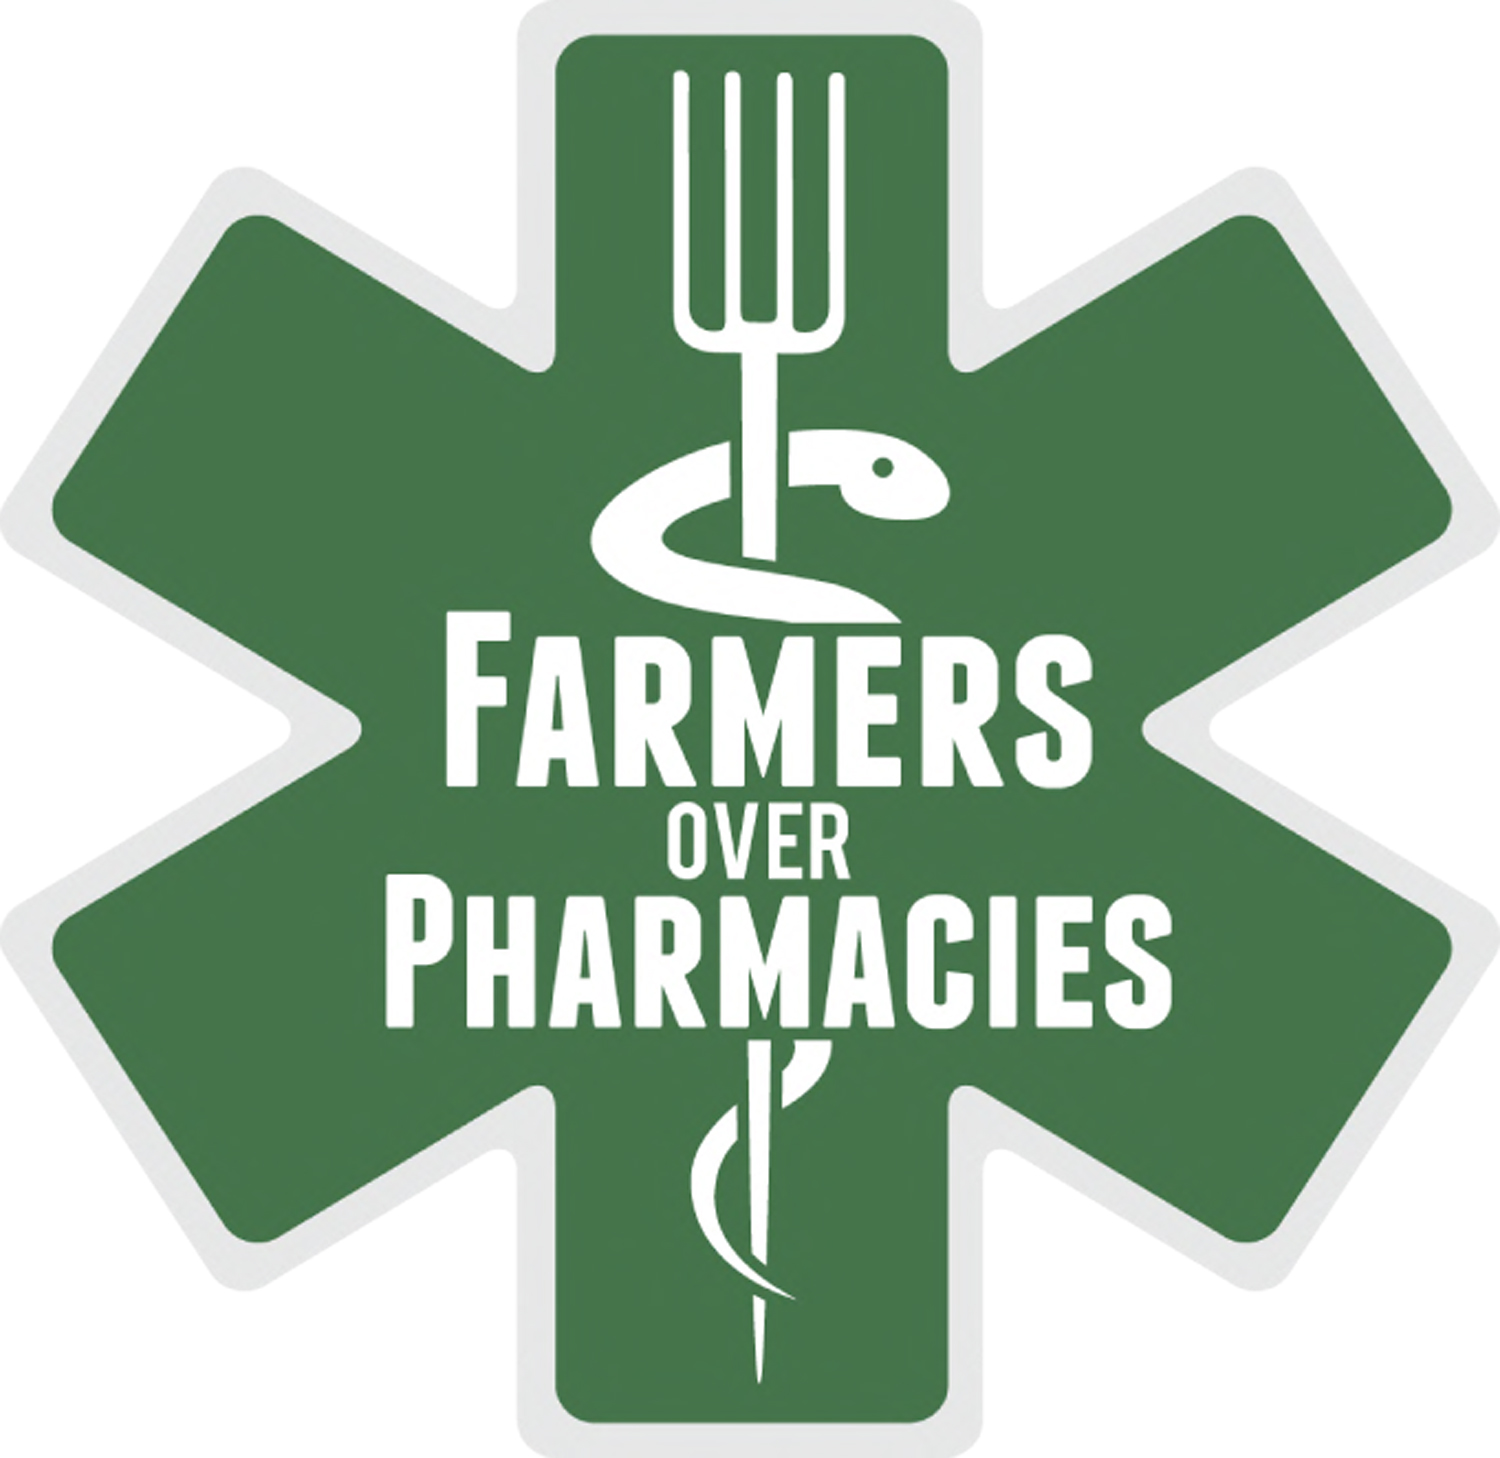 Farmers Over Pharmacies